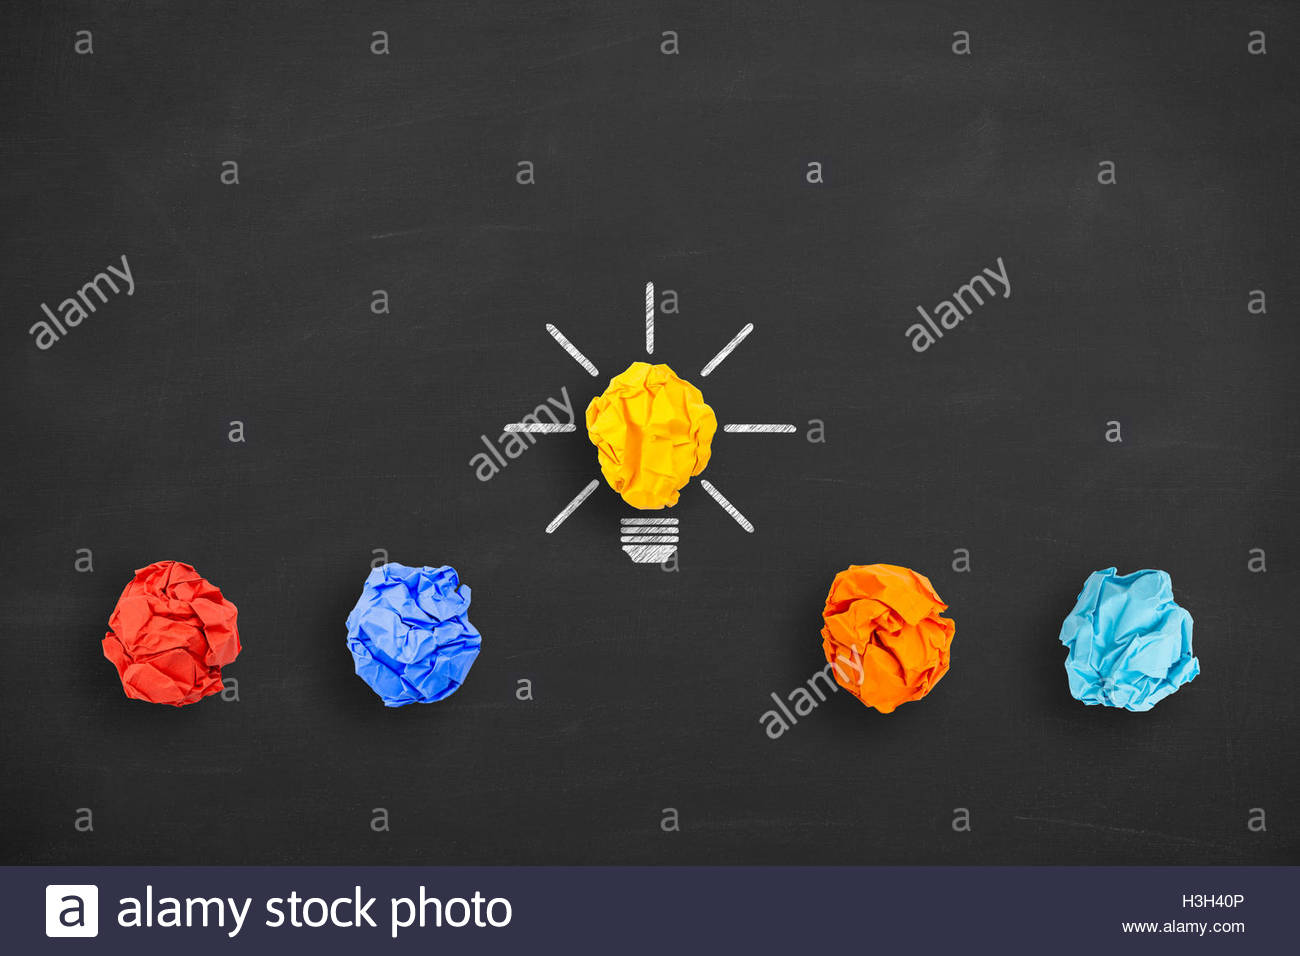 Idea concept crumpled paper light bulb metaphor for good idea on blackboard - Stock Image